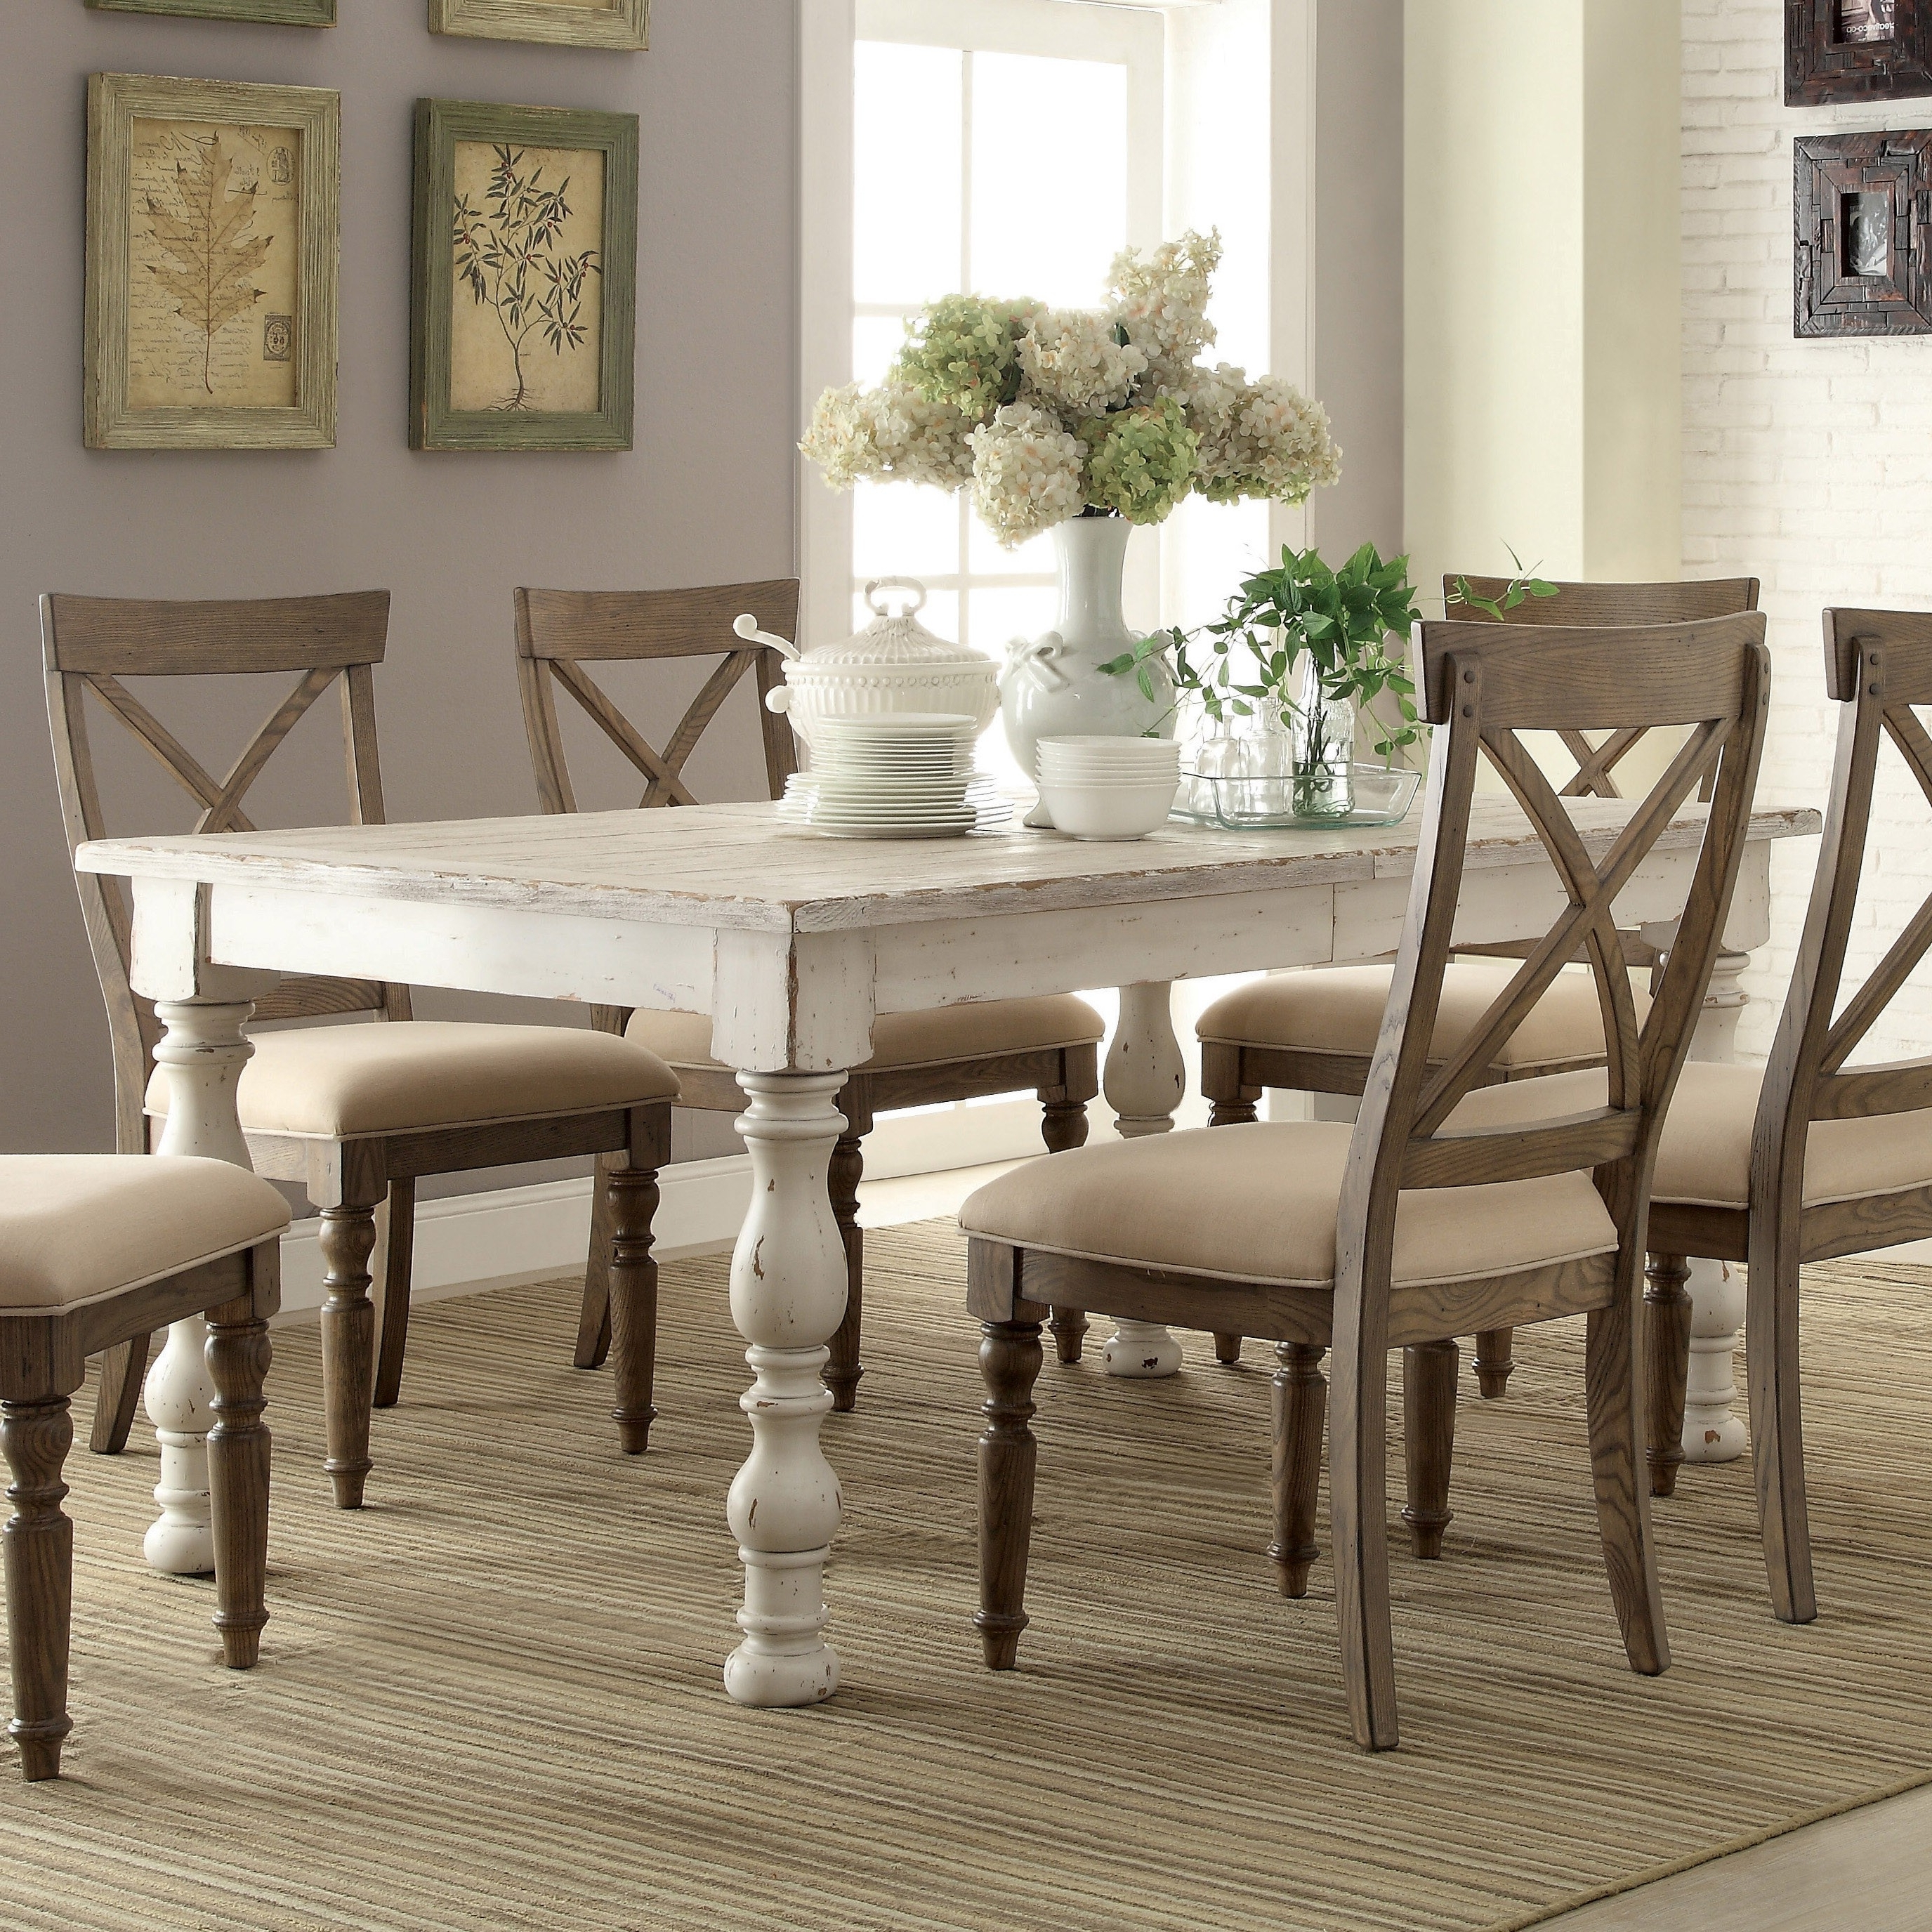 Famous Aberdeen Wood Rectangular Dining Table In Weathered Worn White With Regard To Dining Tables Chairs (View 12 of 25)